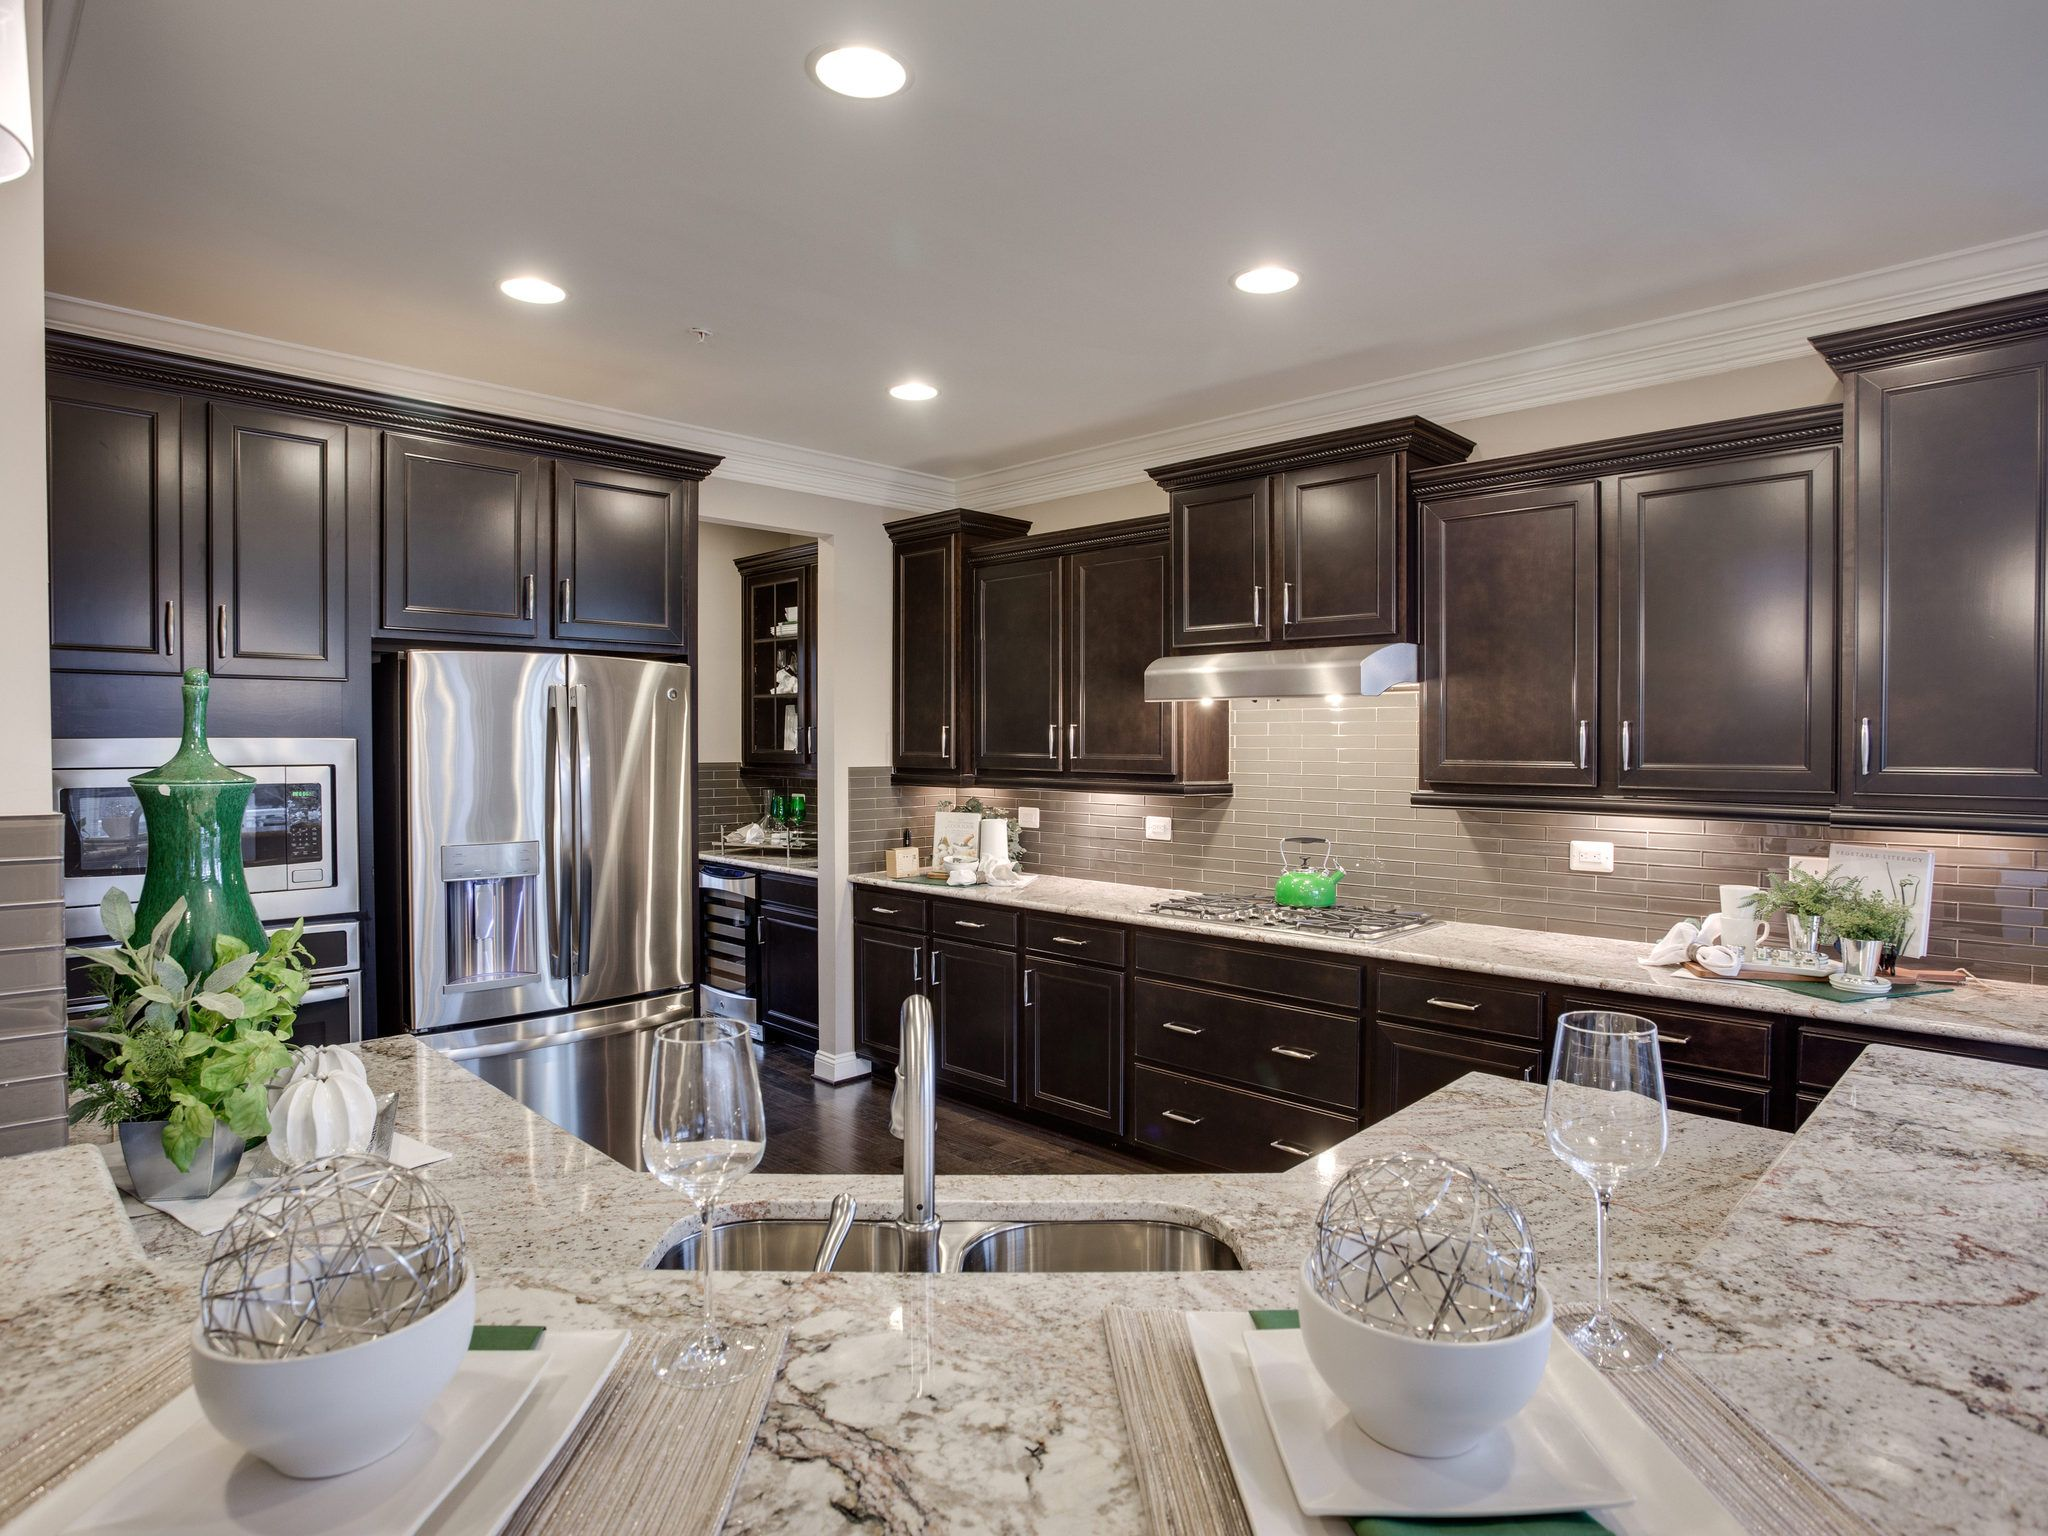 Find Your New Home Local Home Builders Kitchen Design Modern Kitchen Design Kitchen Inspirations